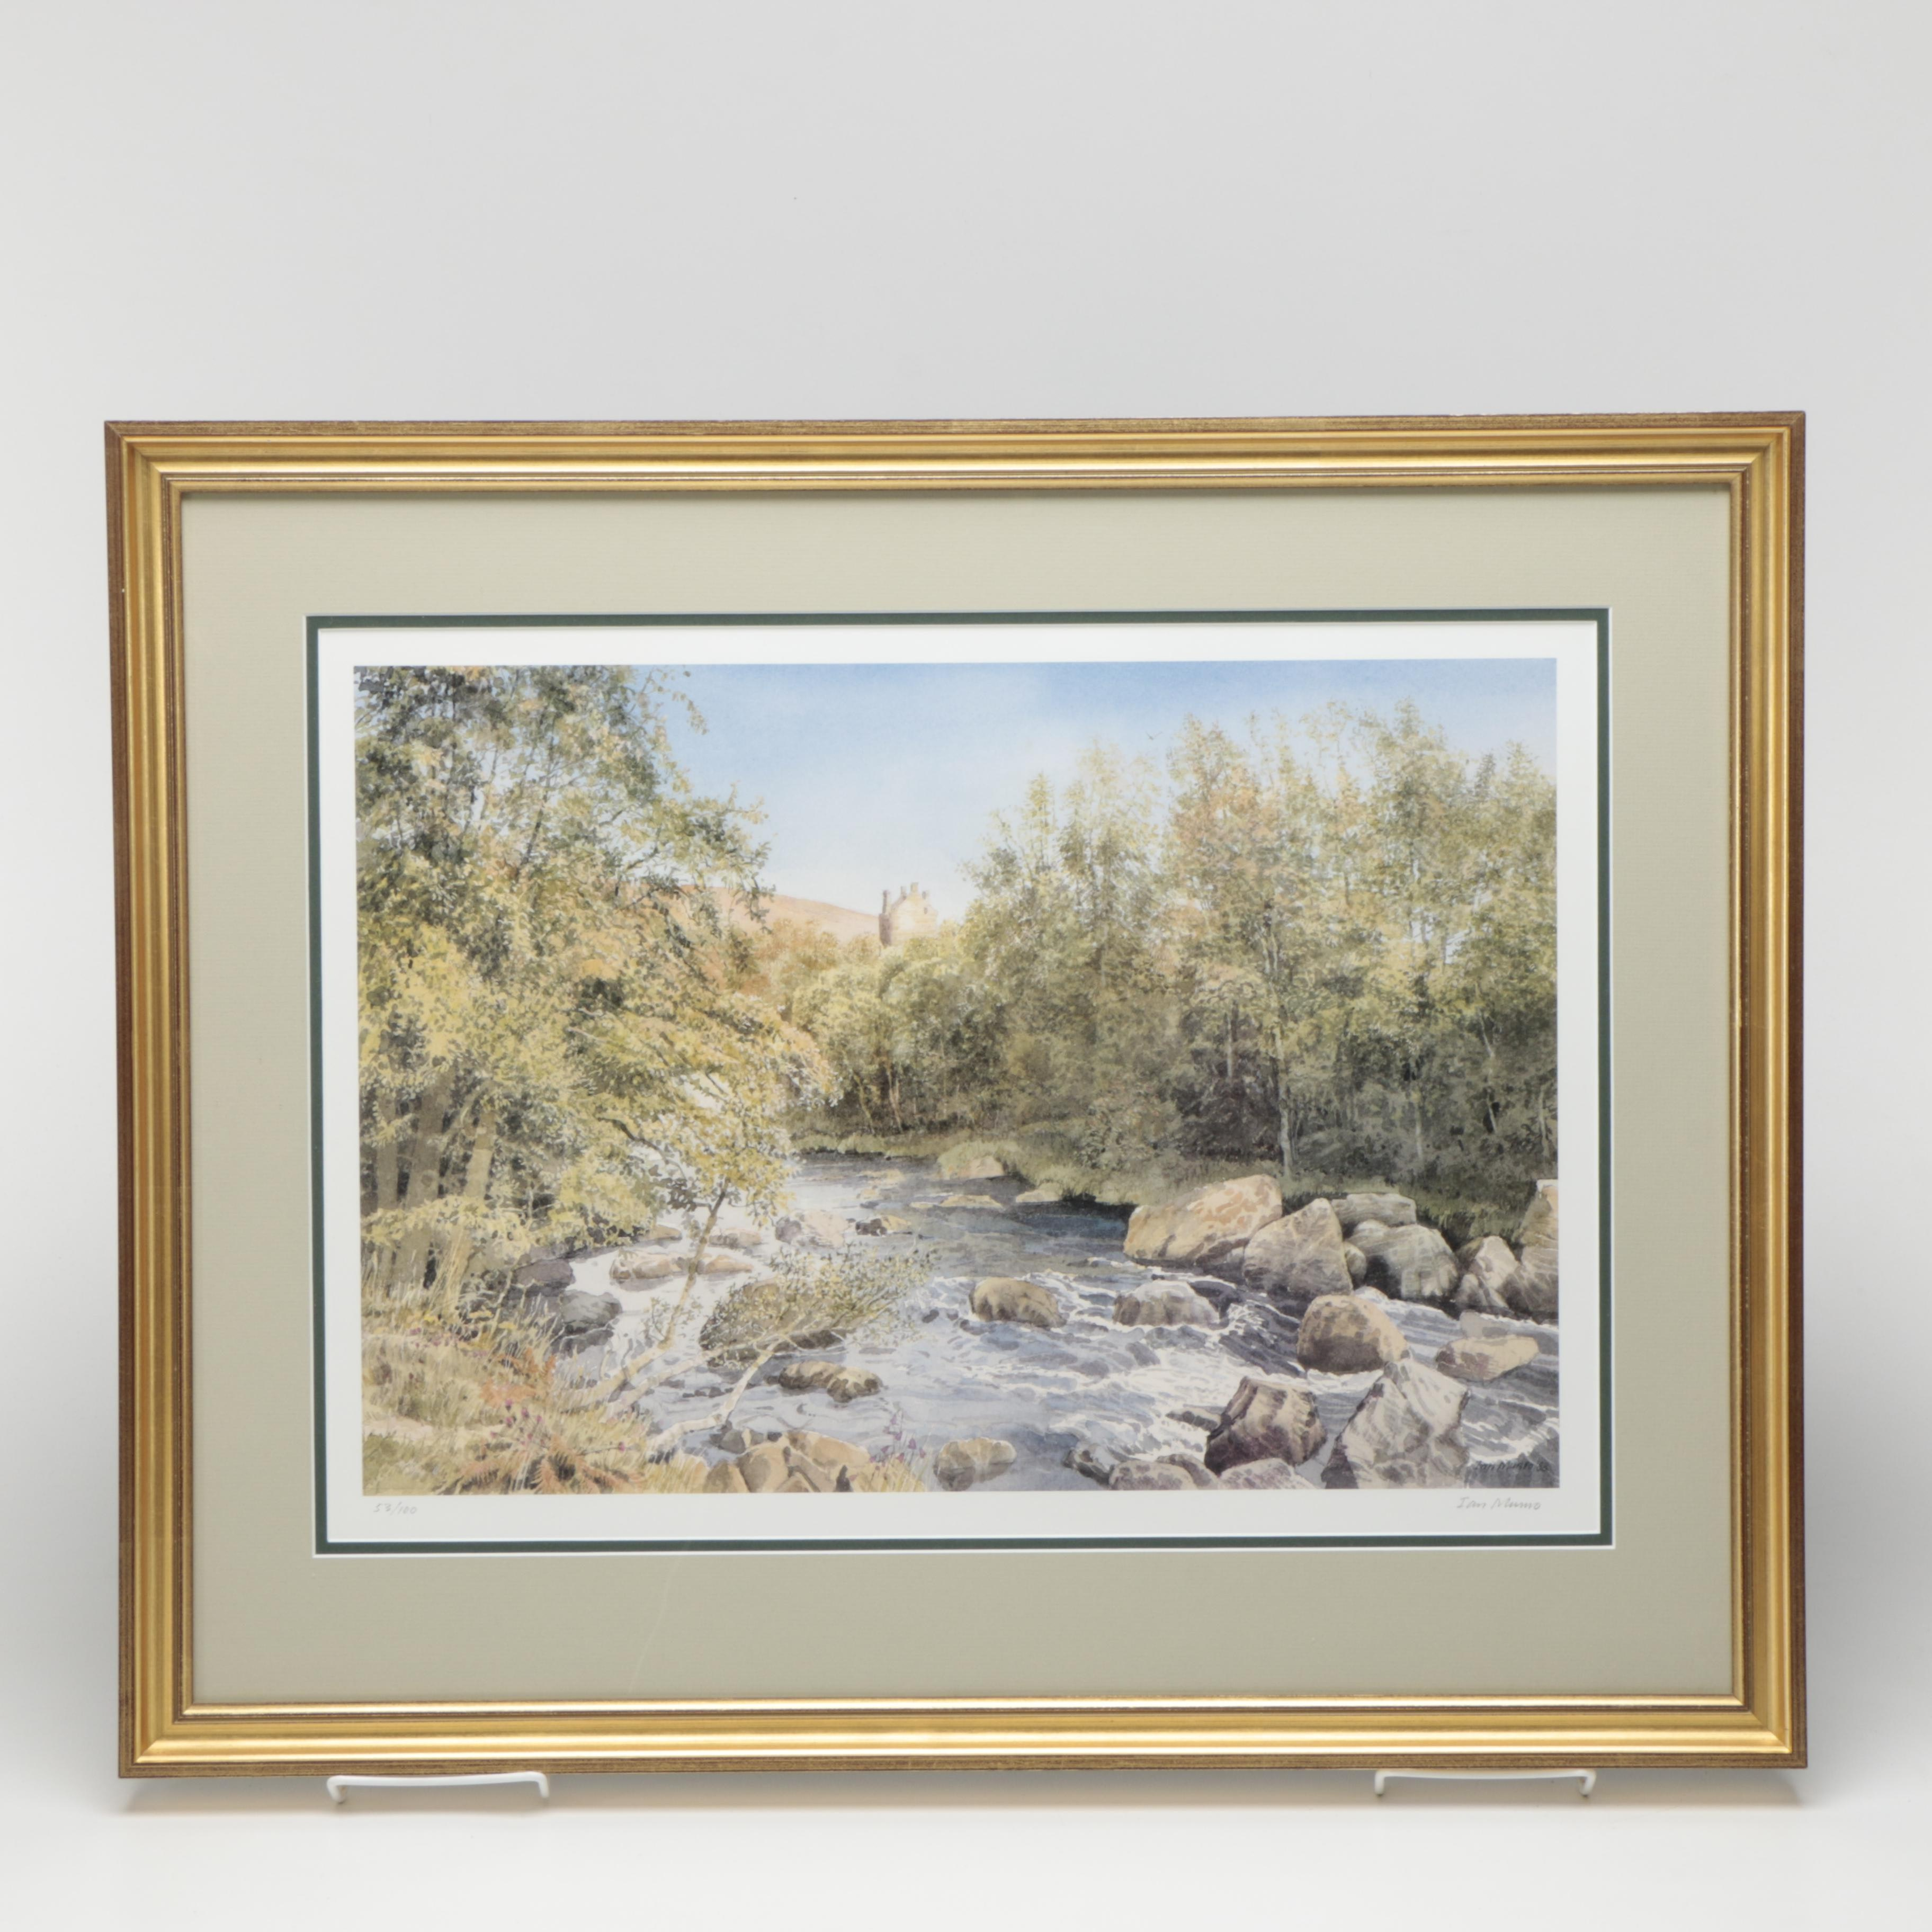 Ian Munro Limited Edition Offset Lithograph Landscape